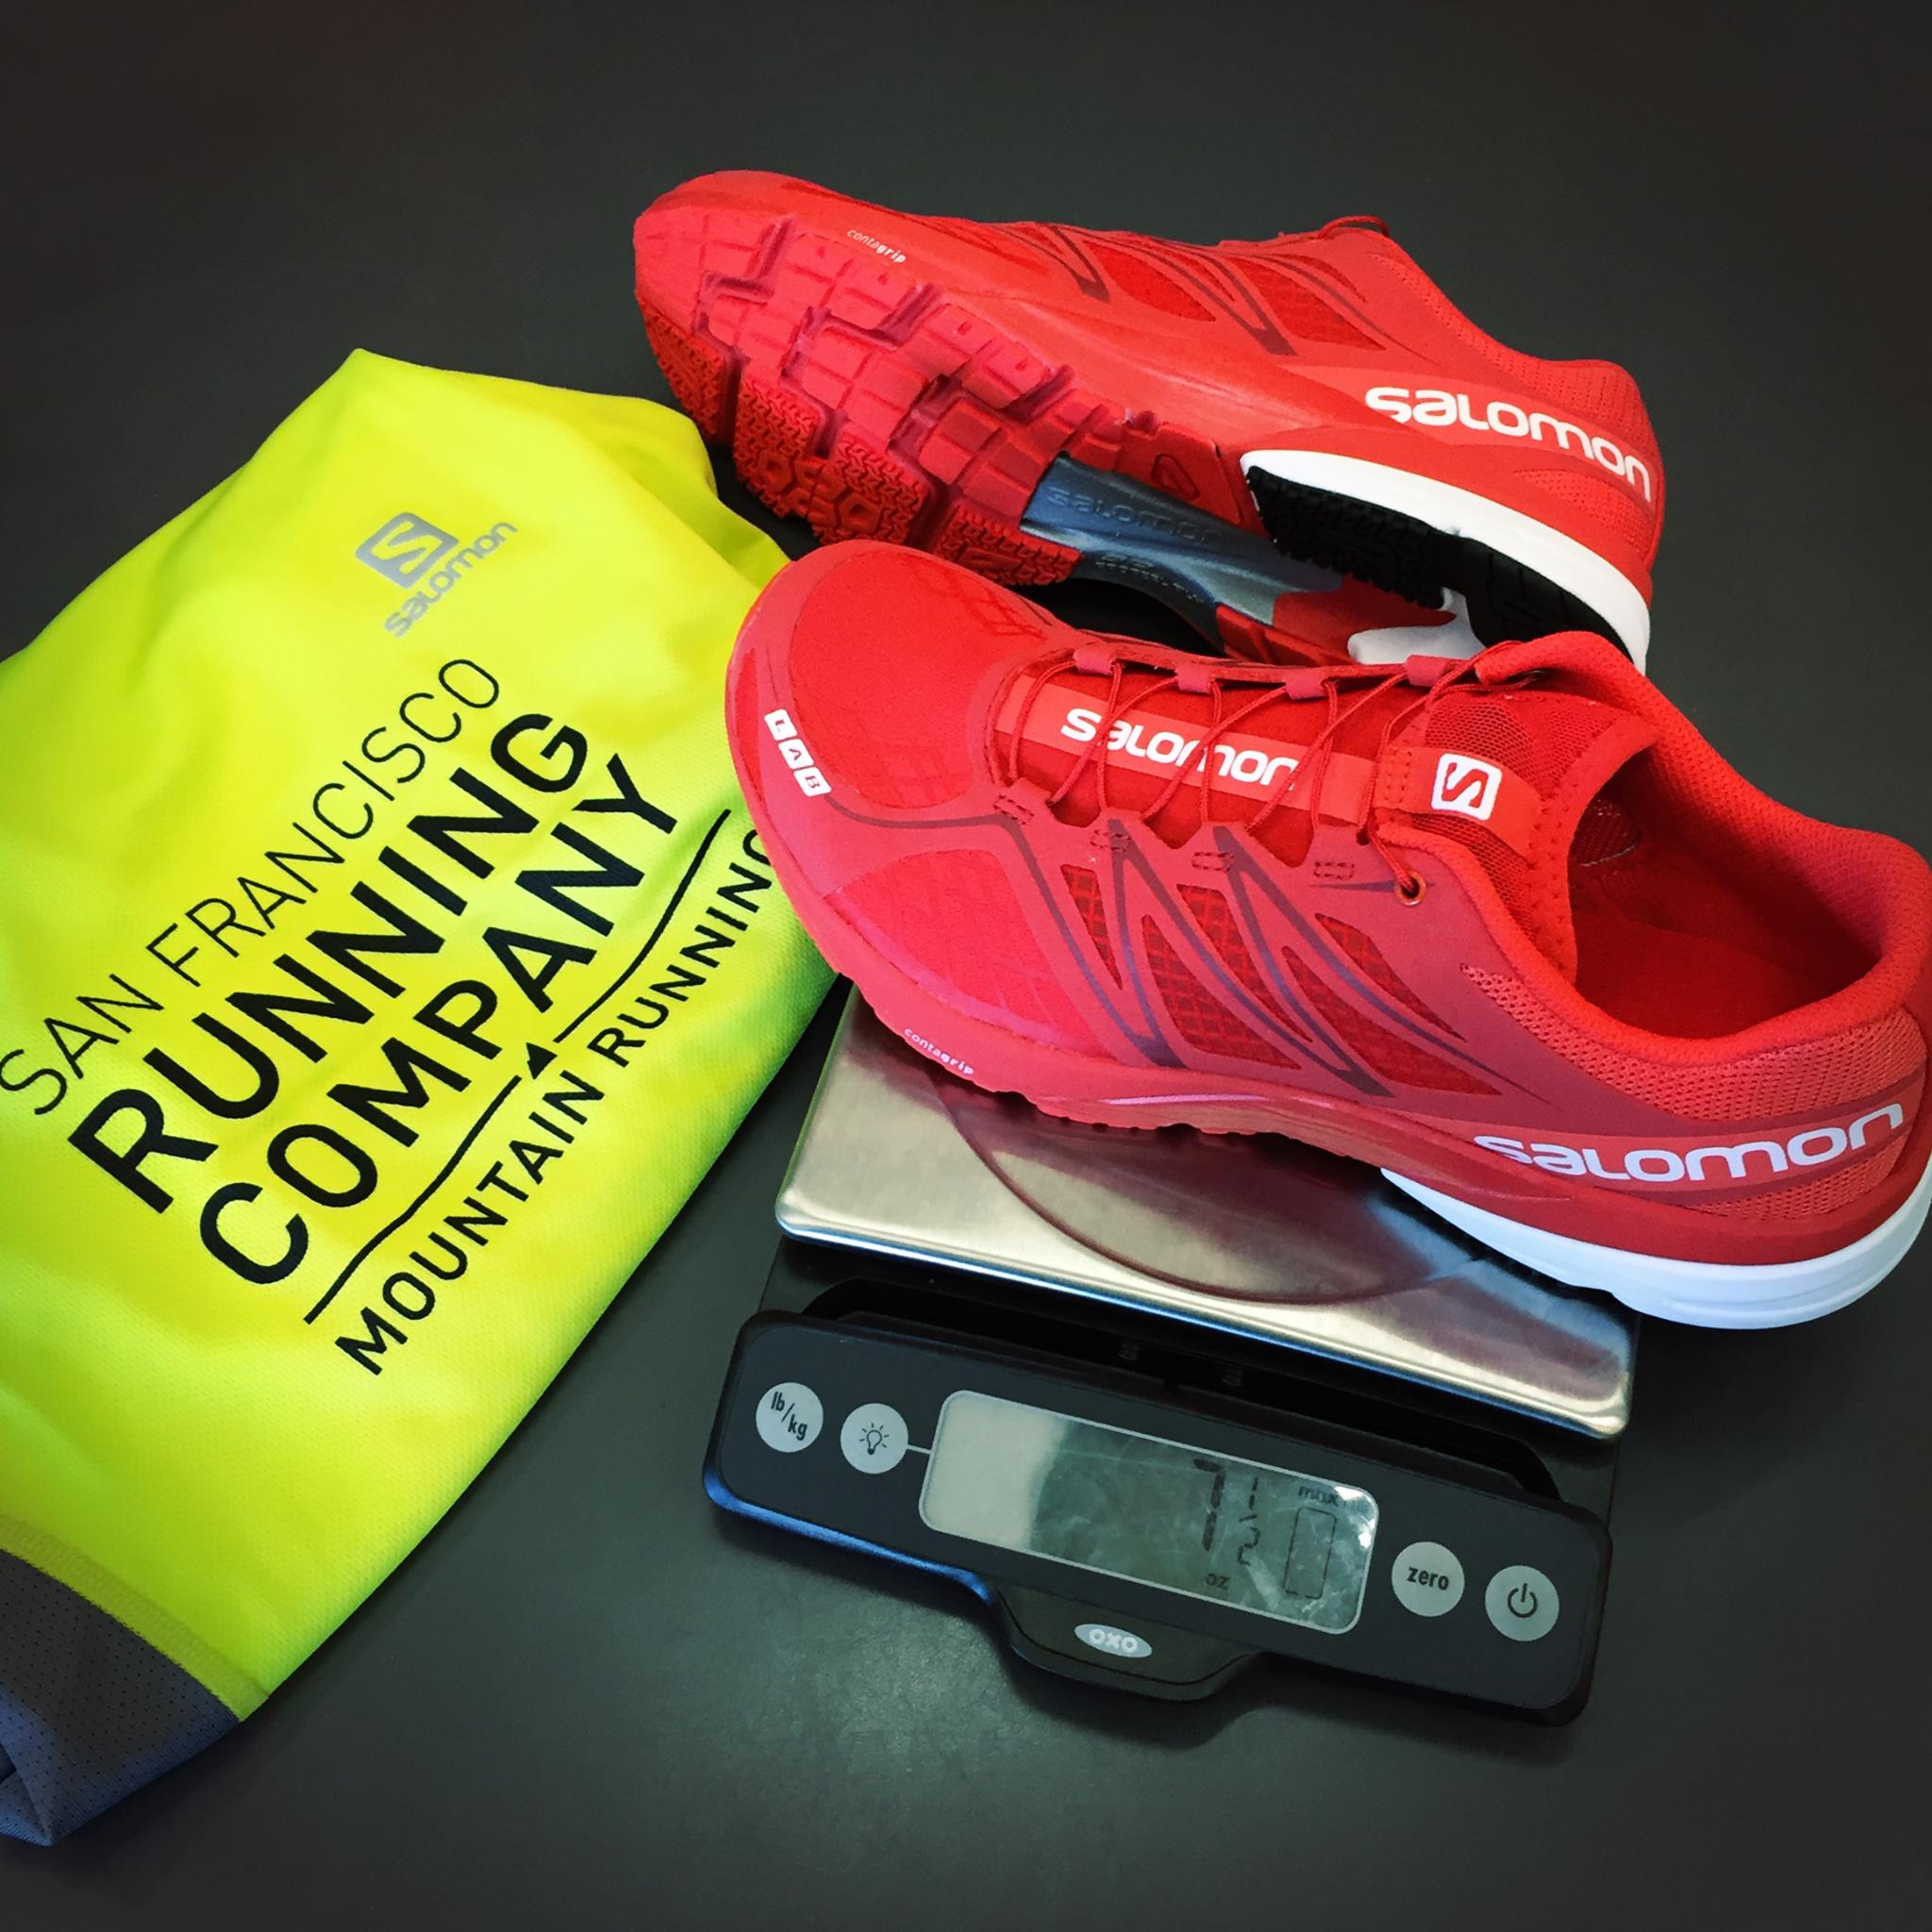 Onwijs SFRC Saturday Run w/ Salomon, Suunto, and KidRunner demos! — San TG-83